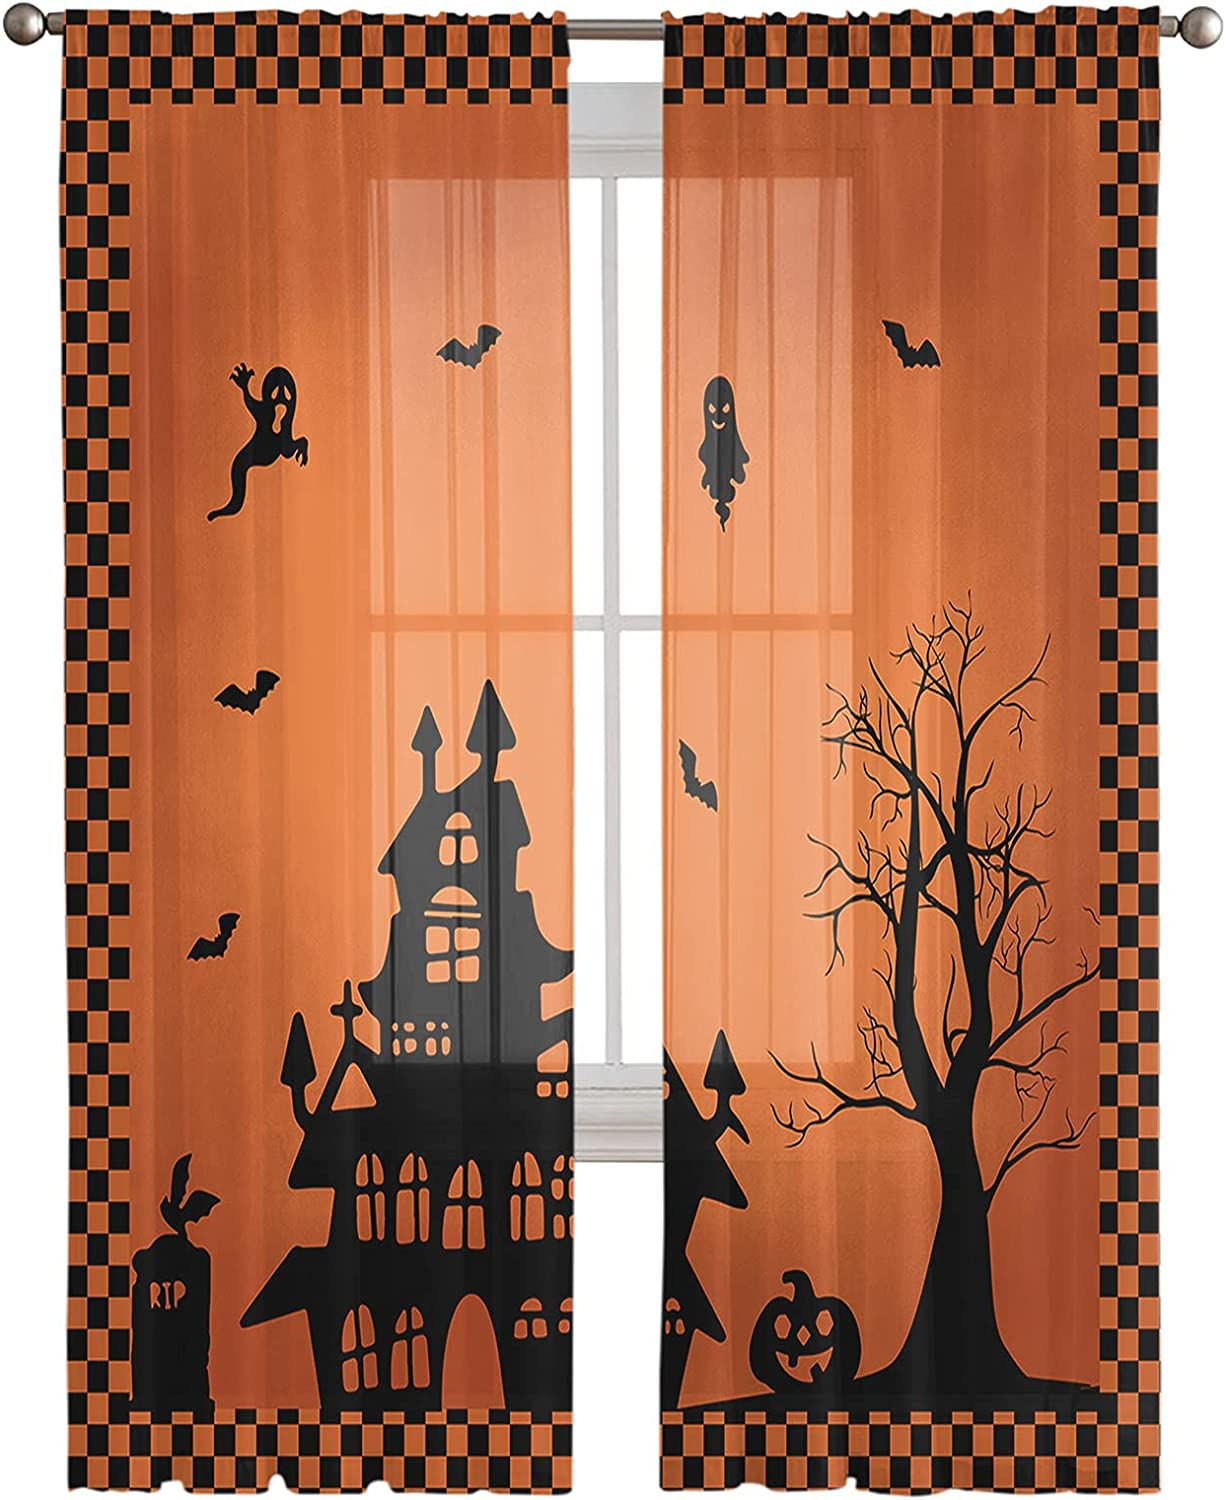 Sheer All items in the store Window Curtain Panels Gifts Happy Dead Haunted T House Halloween